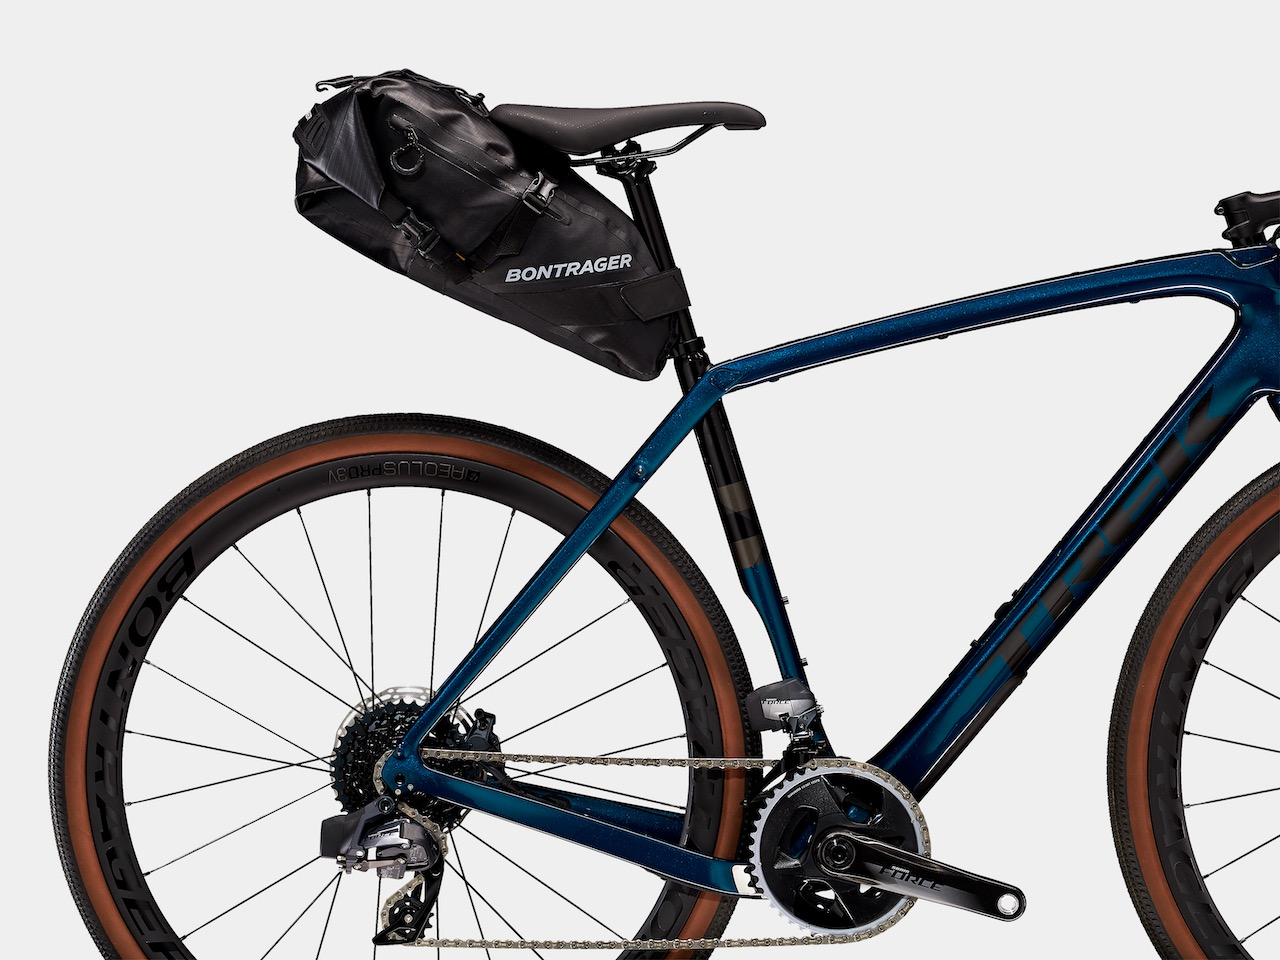 Bontrager releases new premium Adventure frame, handlebar and seat bags thumbnail